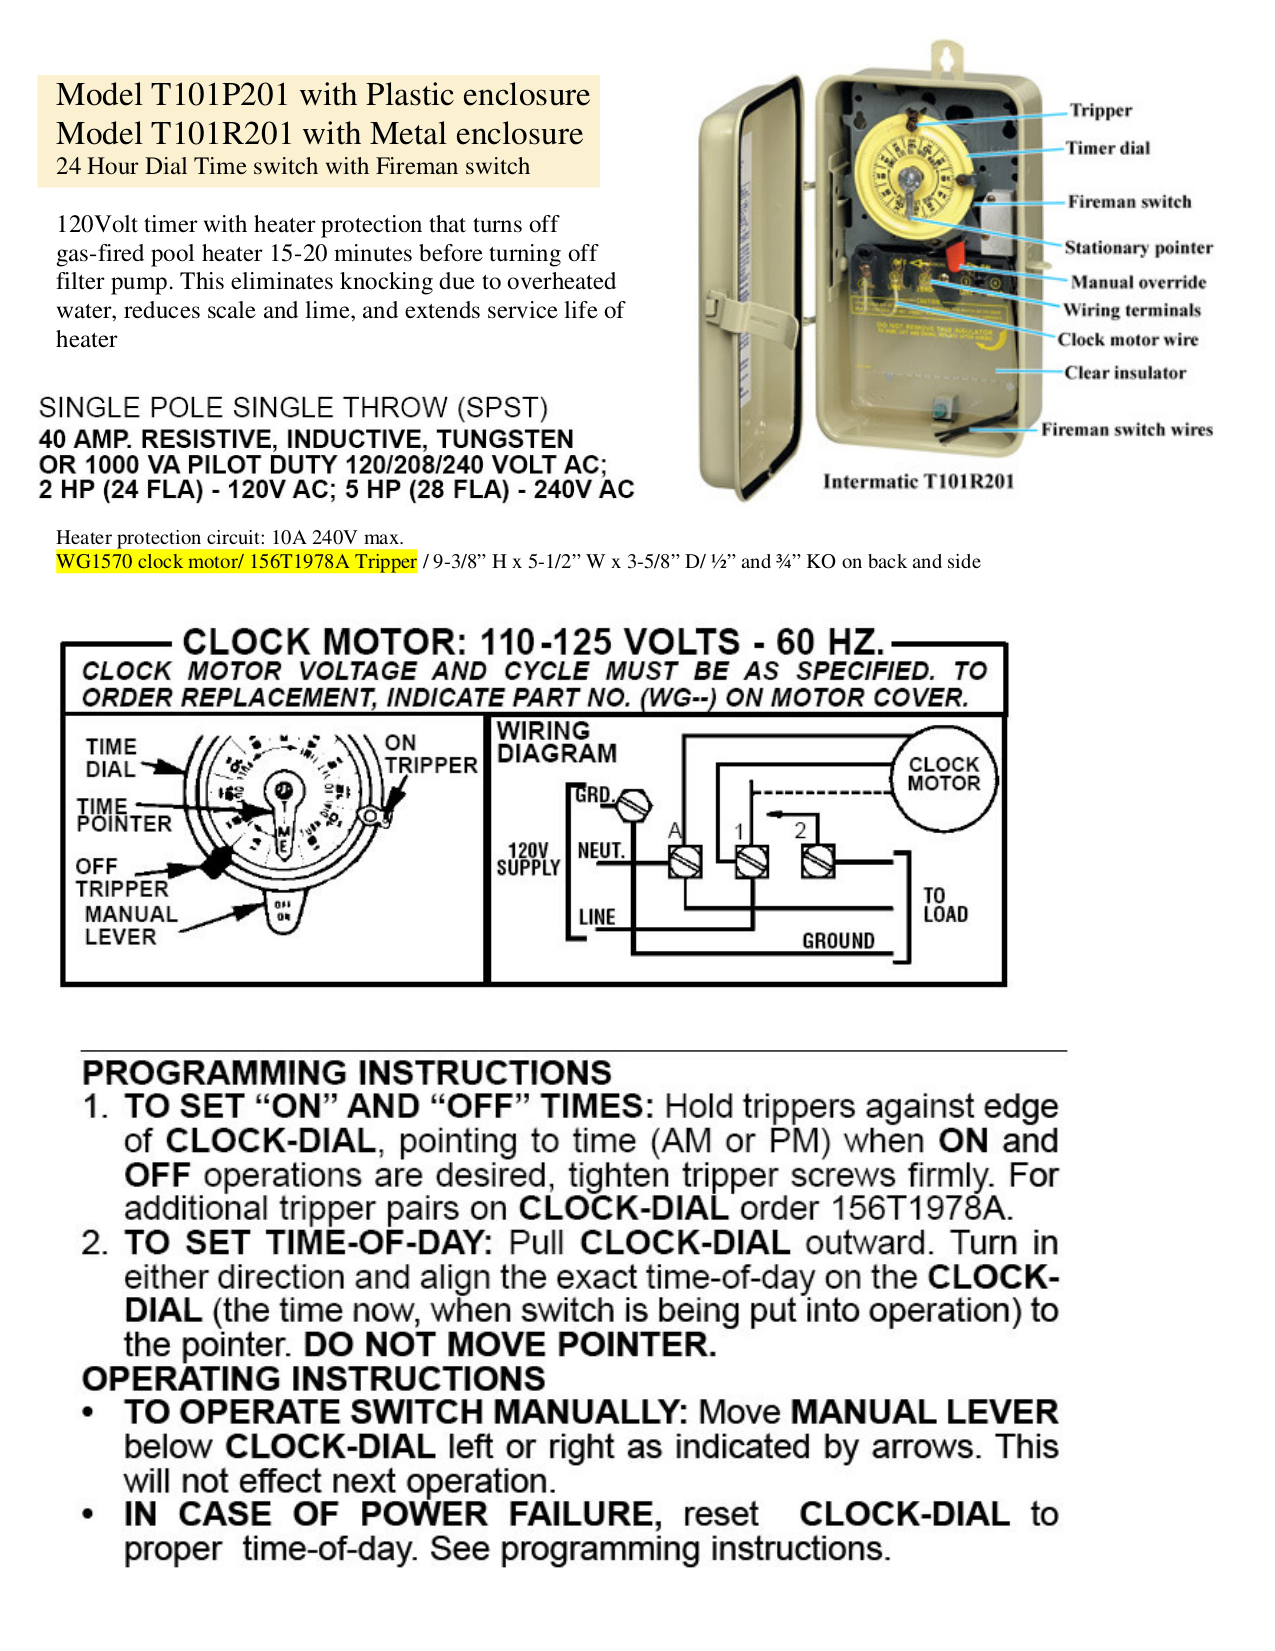 Intermatic Pool Pump Timer Wiring Diagram Free Download -Western Star Truck Wiring  Diagram Acm | Begeboy Wiring Diagram SourceBegeboy Wiring Diagram Source